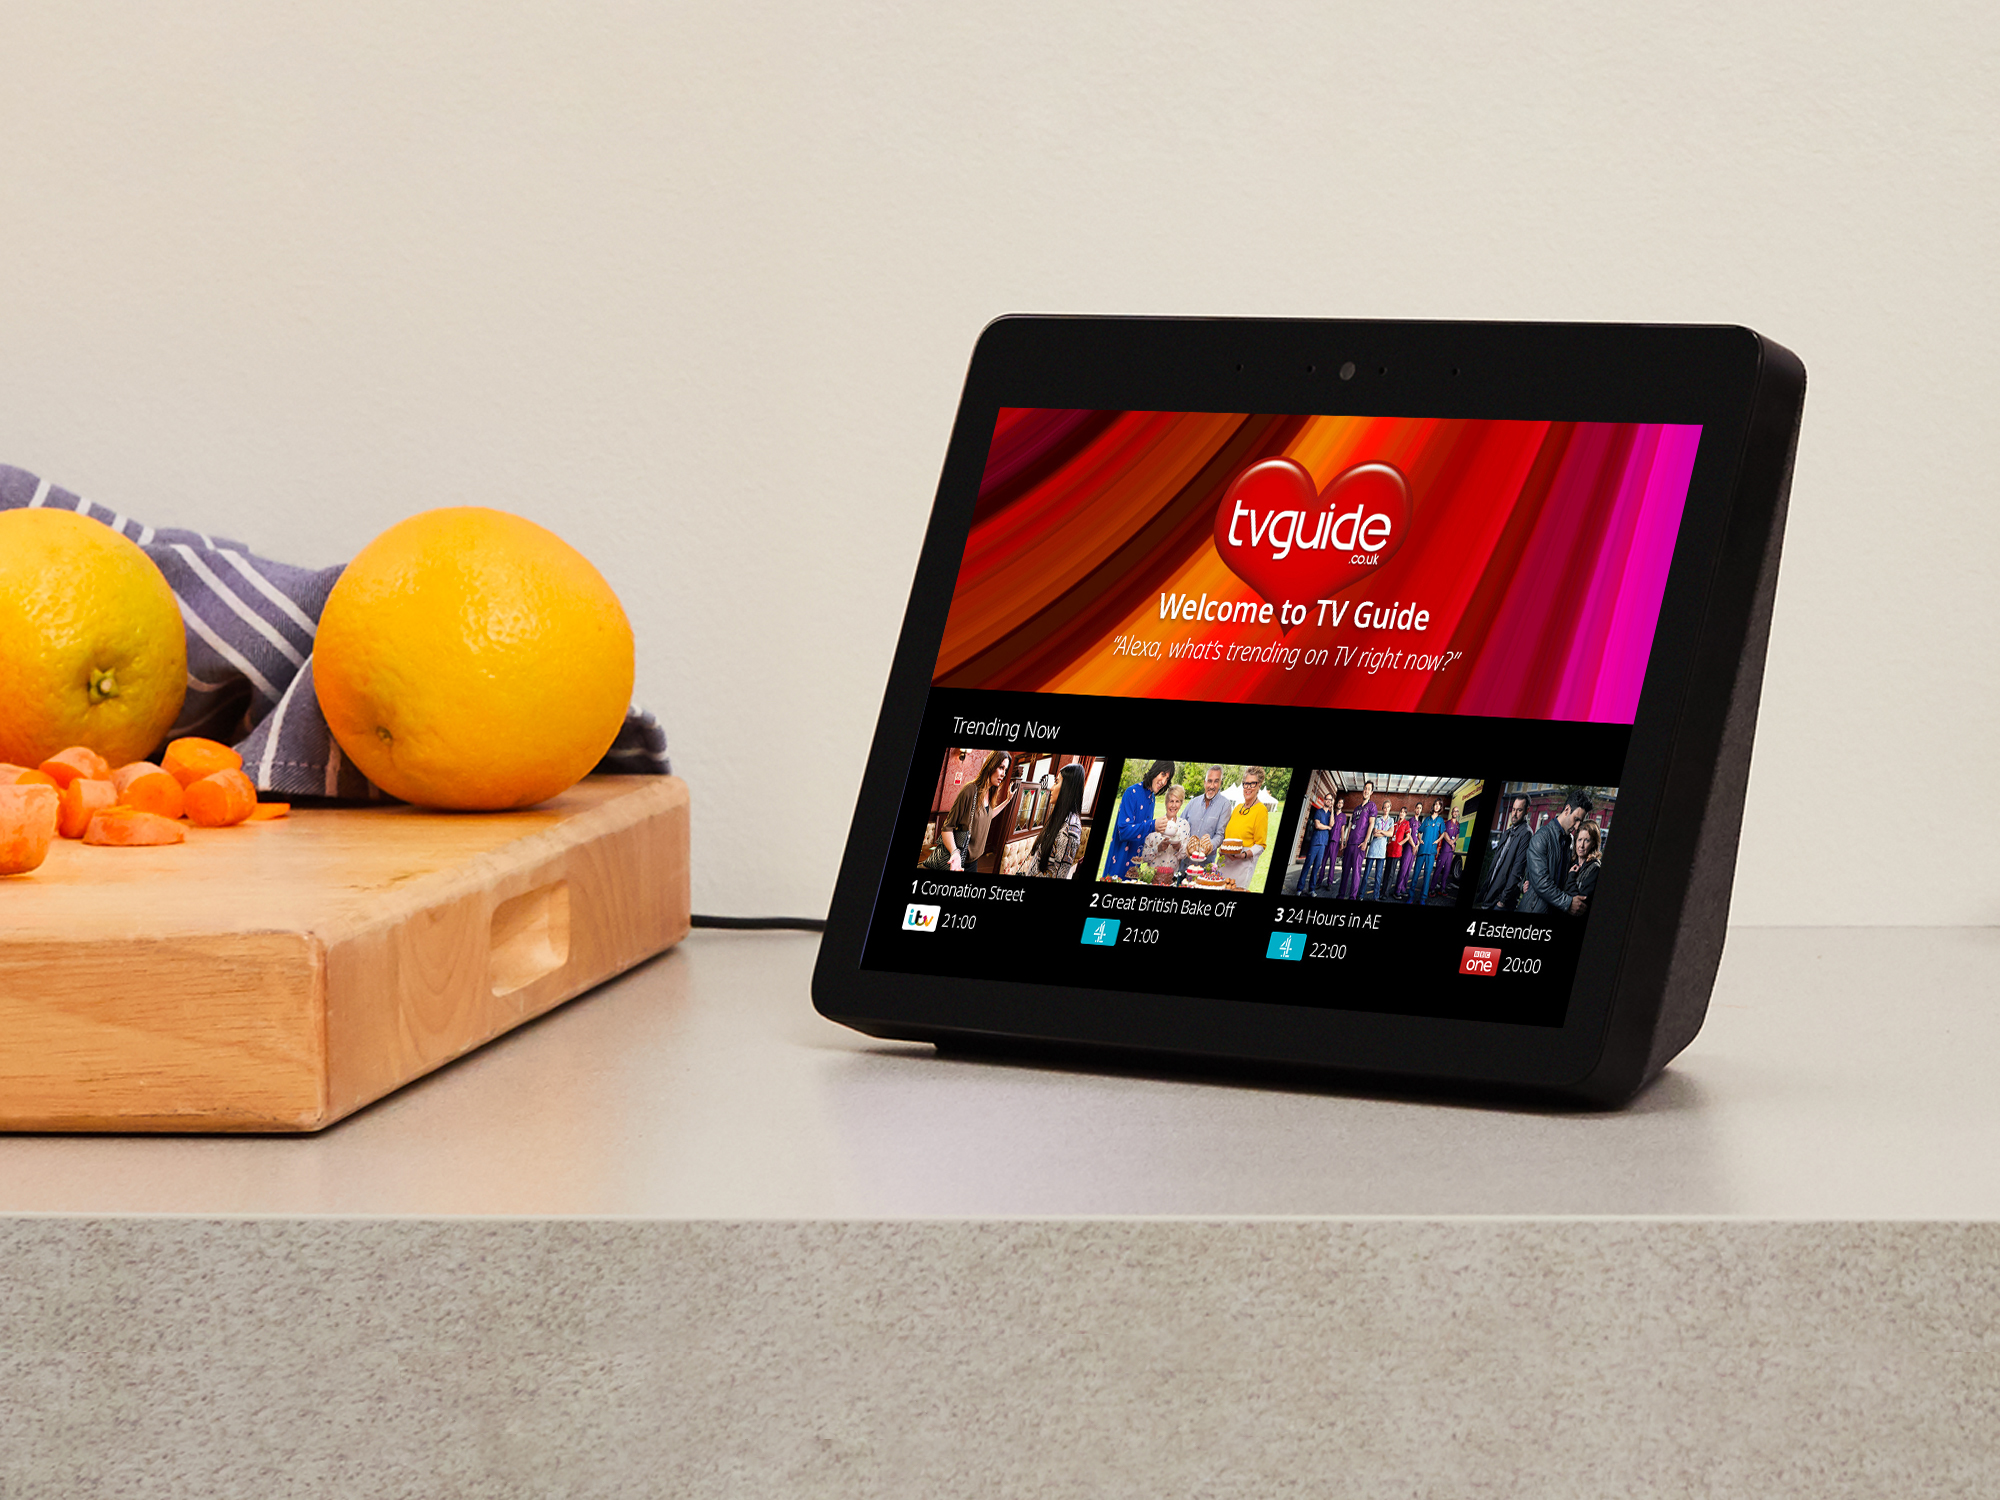 The device sounds similar to an Echo Show